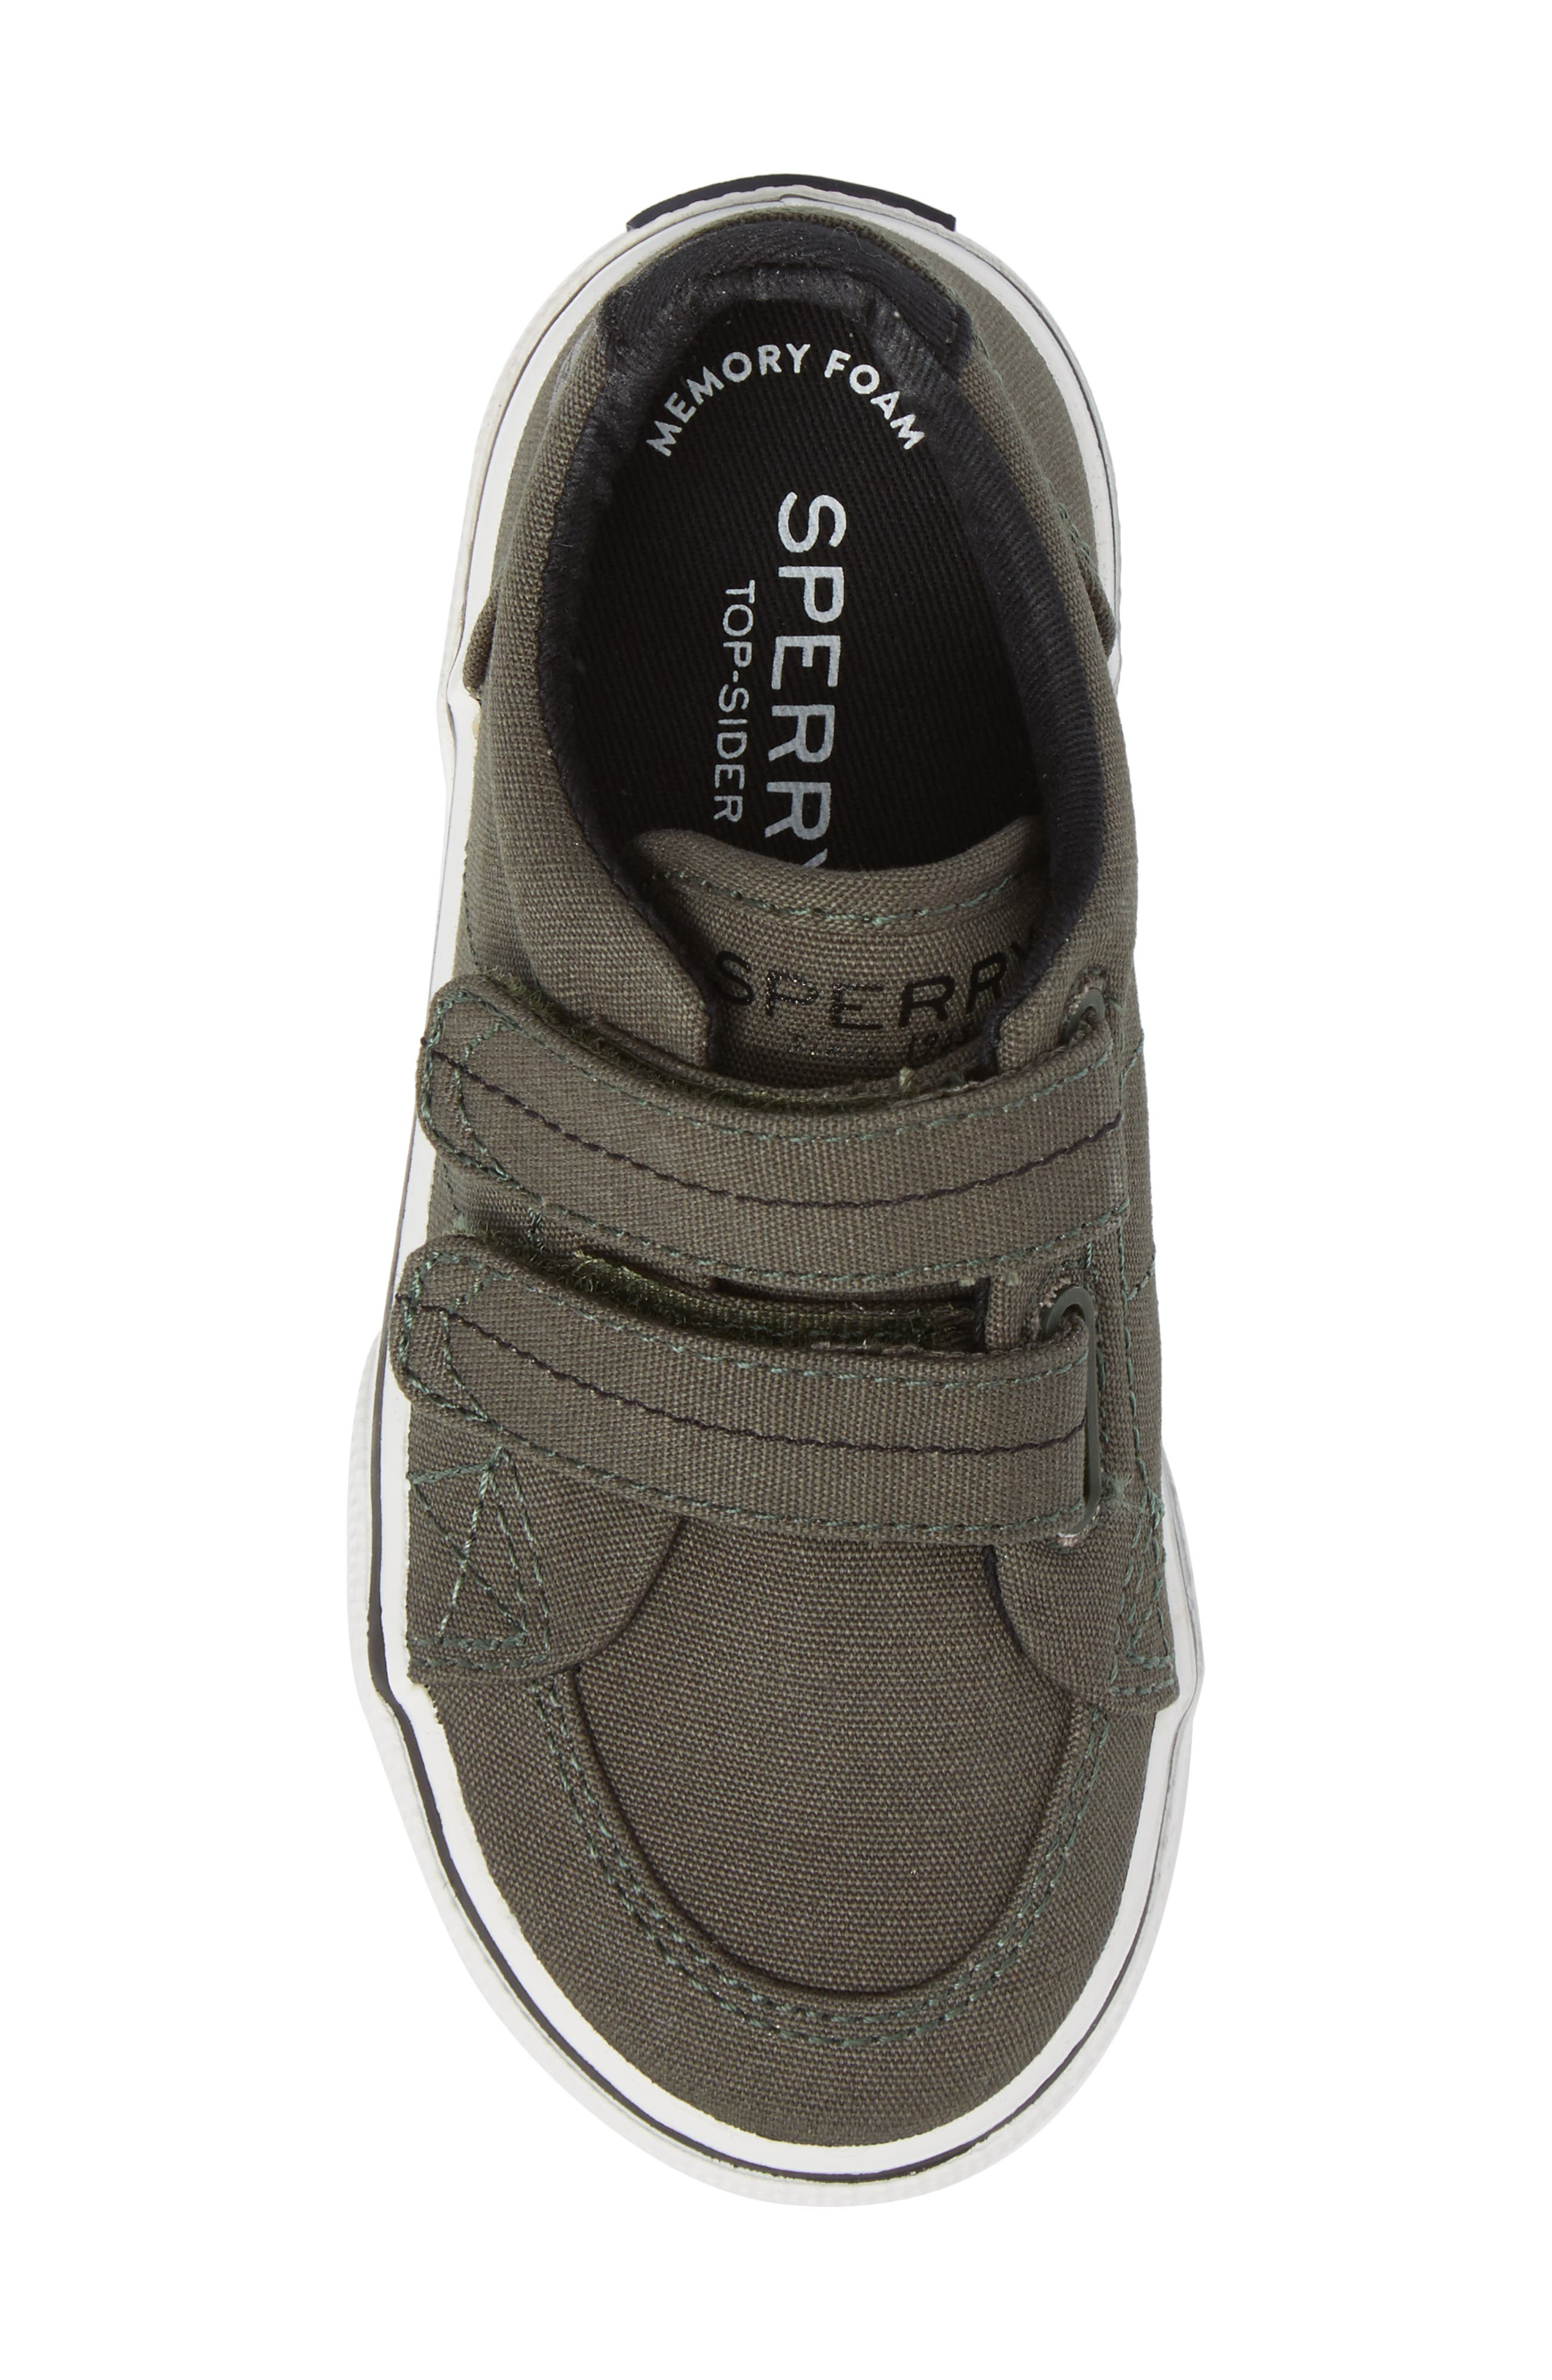 Sperry Top-Sider<sup>®</sup> Kids 'Halyard' Sneaker,                             Alternate thumbnail 22, color,